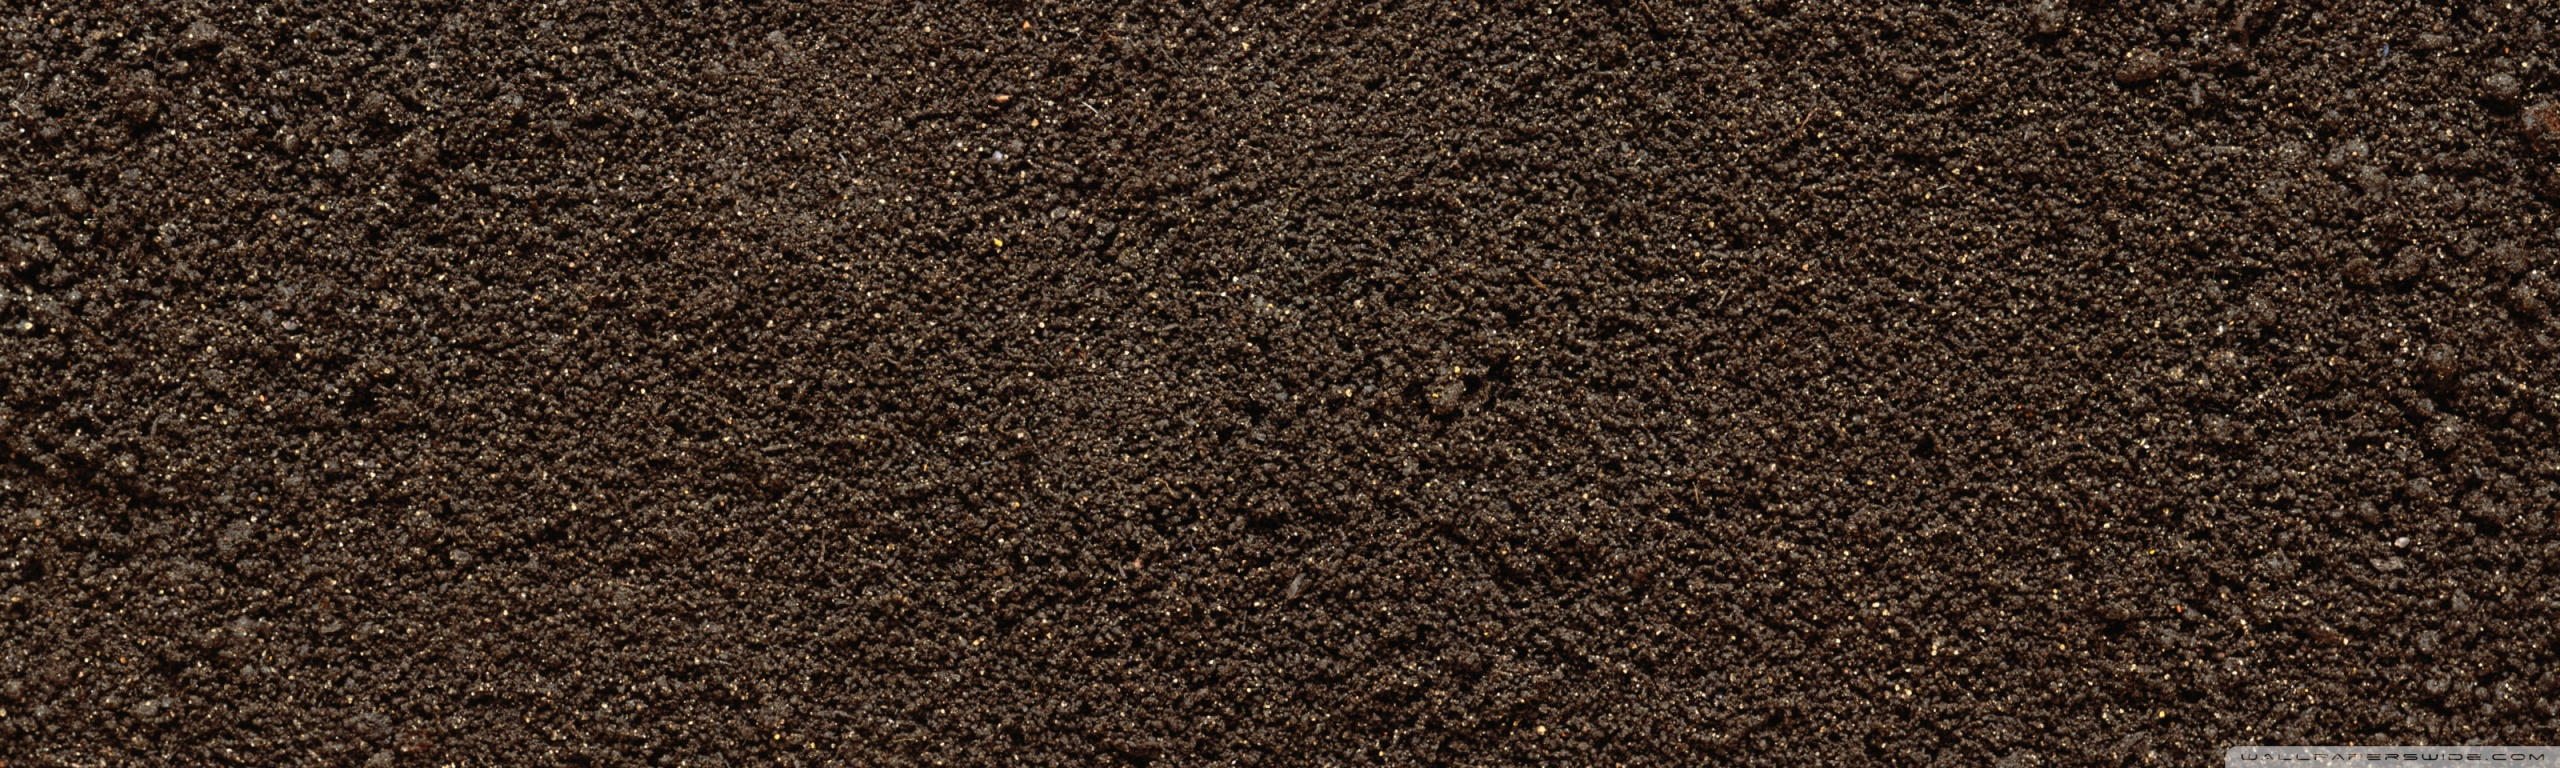 Soil Wallpaper